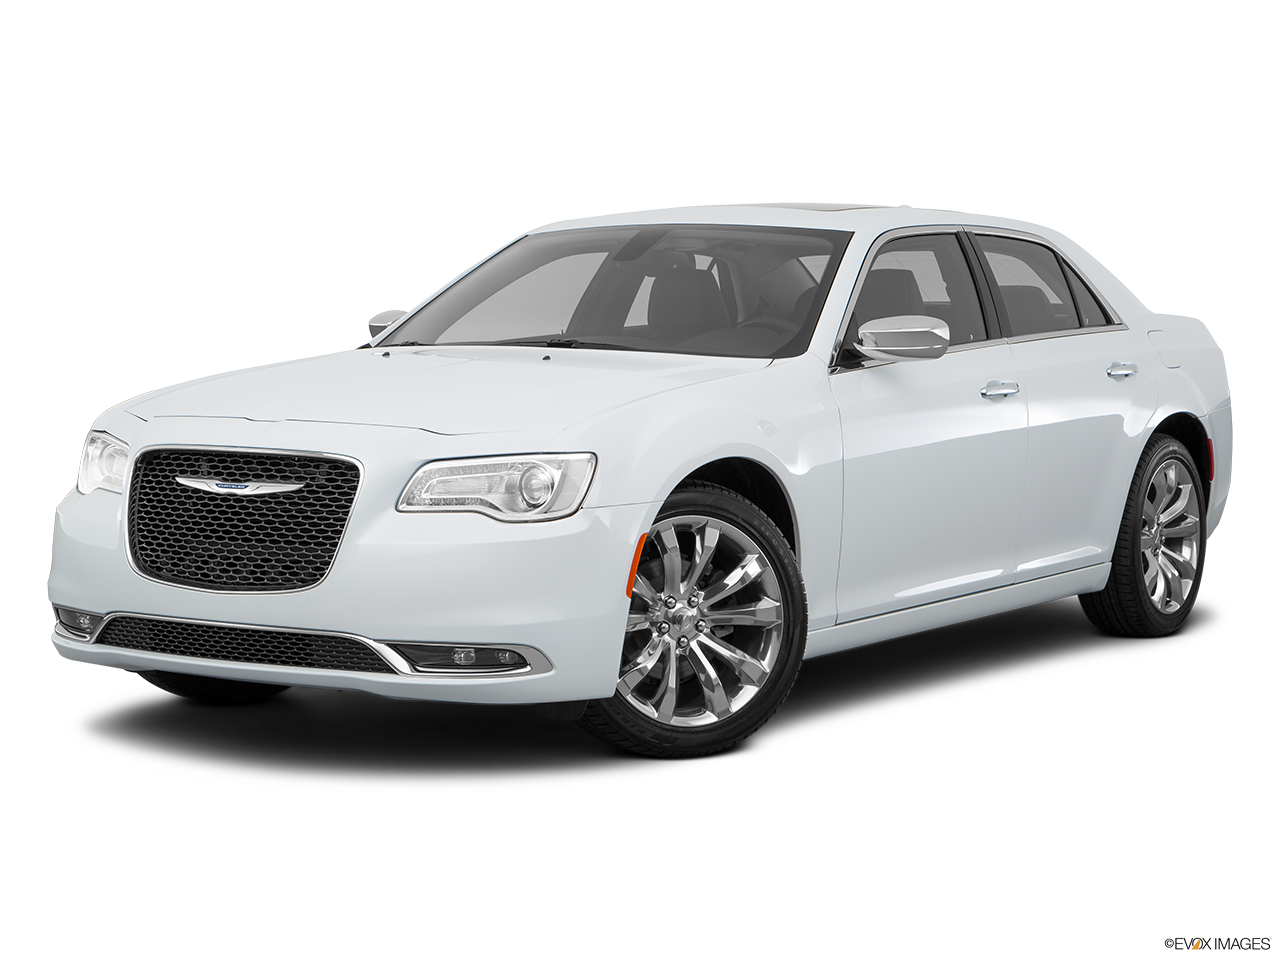 Test Drive A 2016 Chrysler 300 at Carl Burger Dodge Chrysler Jeep Ram World in La Mesa